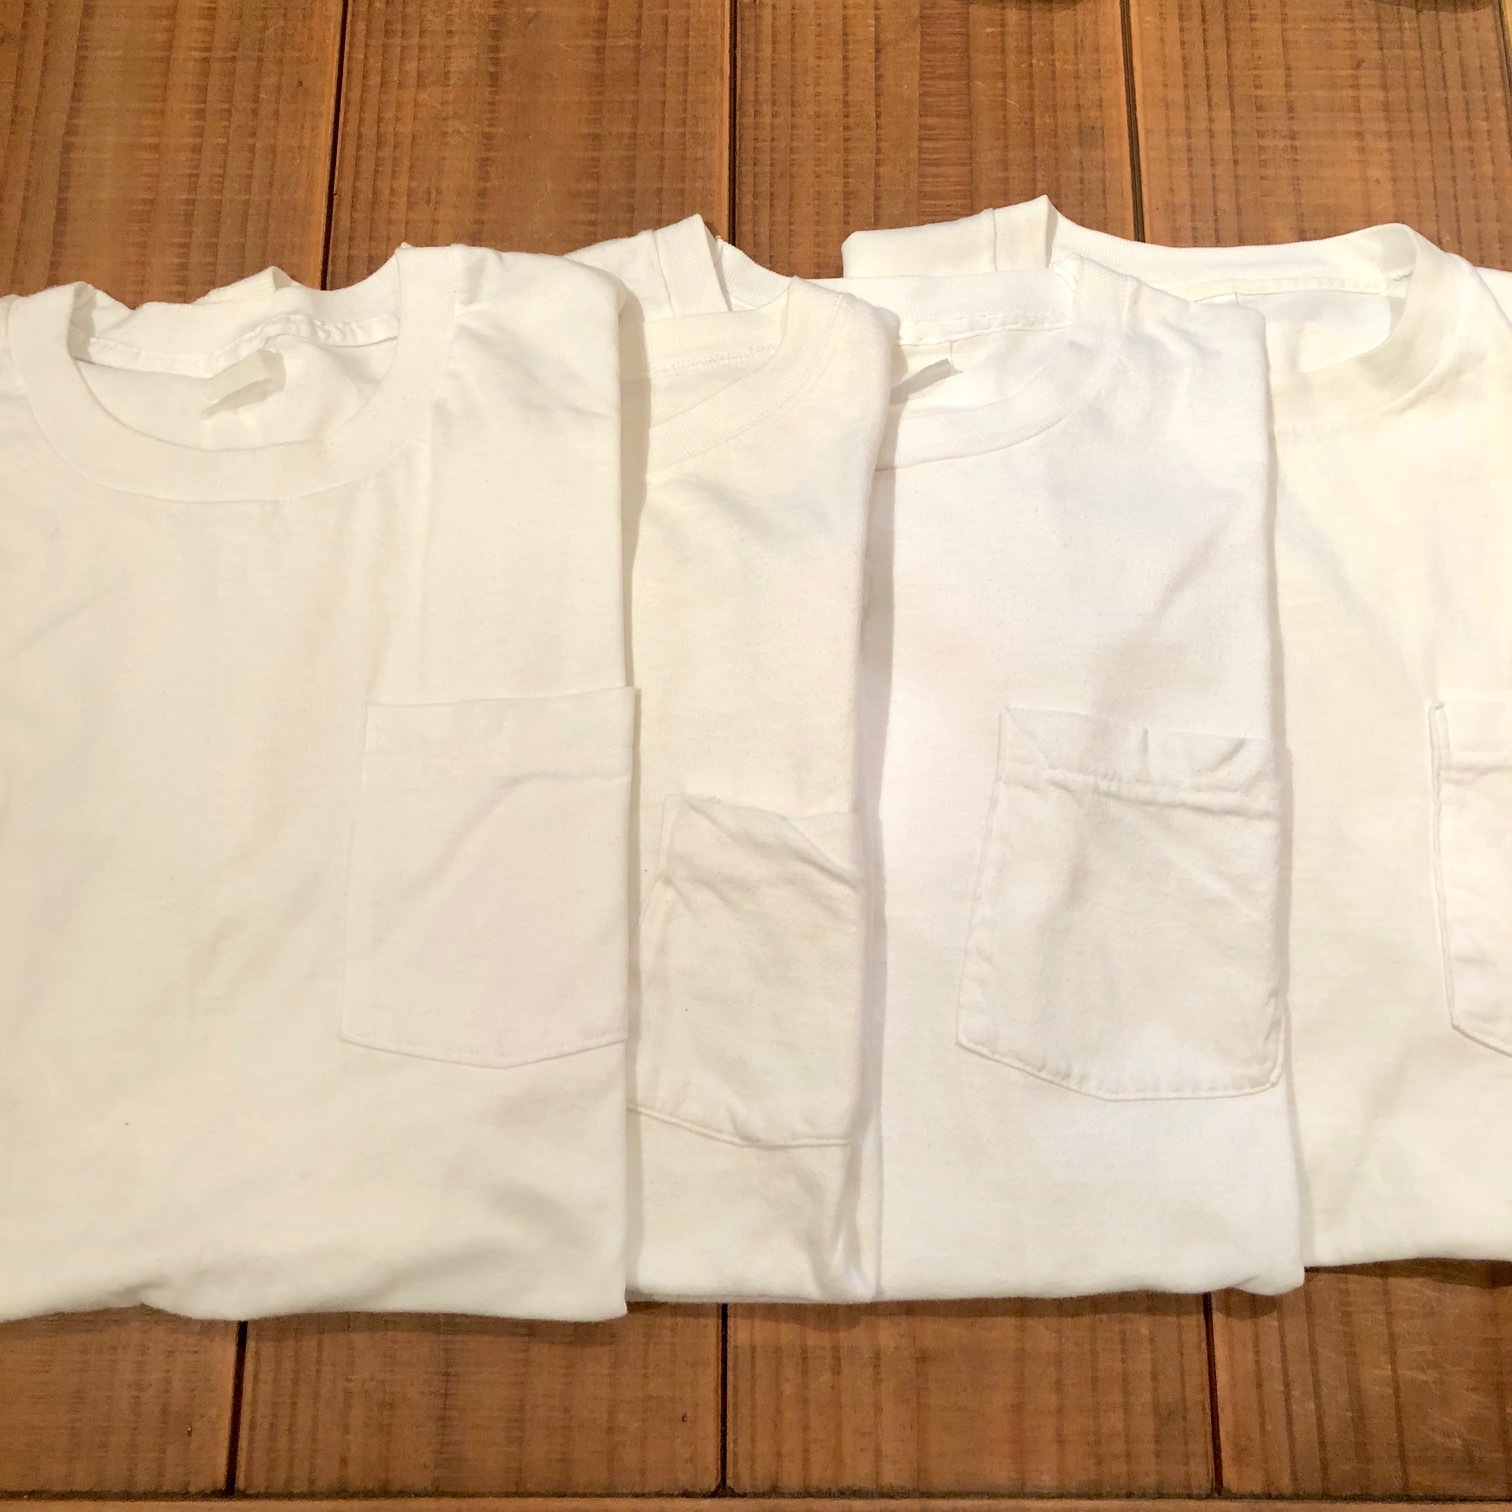 "1980s "" FRUIT OF THE LOOM \"" 100% cotton - BLACK - VINTAGE POCKET Tee SHIRTS × 4P - WHITE - × 4P ._d0172088_17485976.jpg"